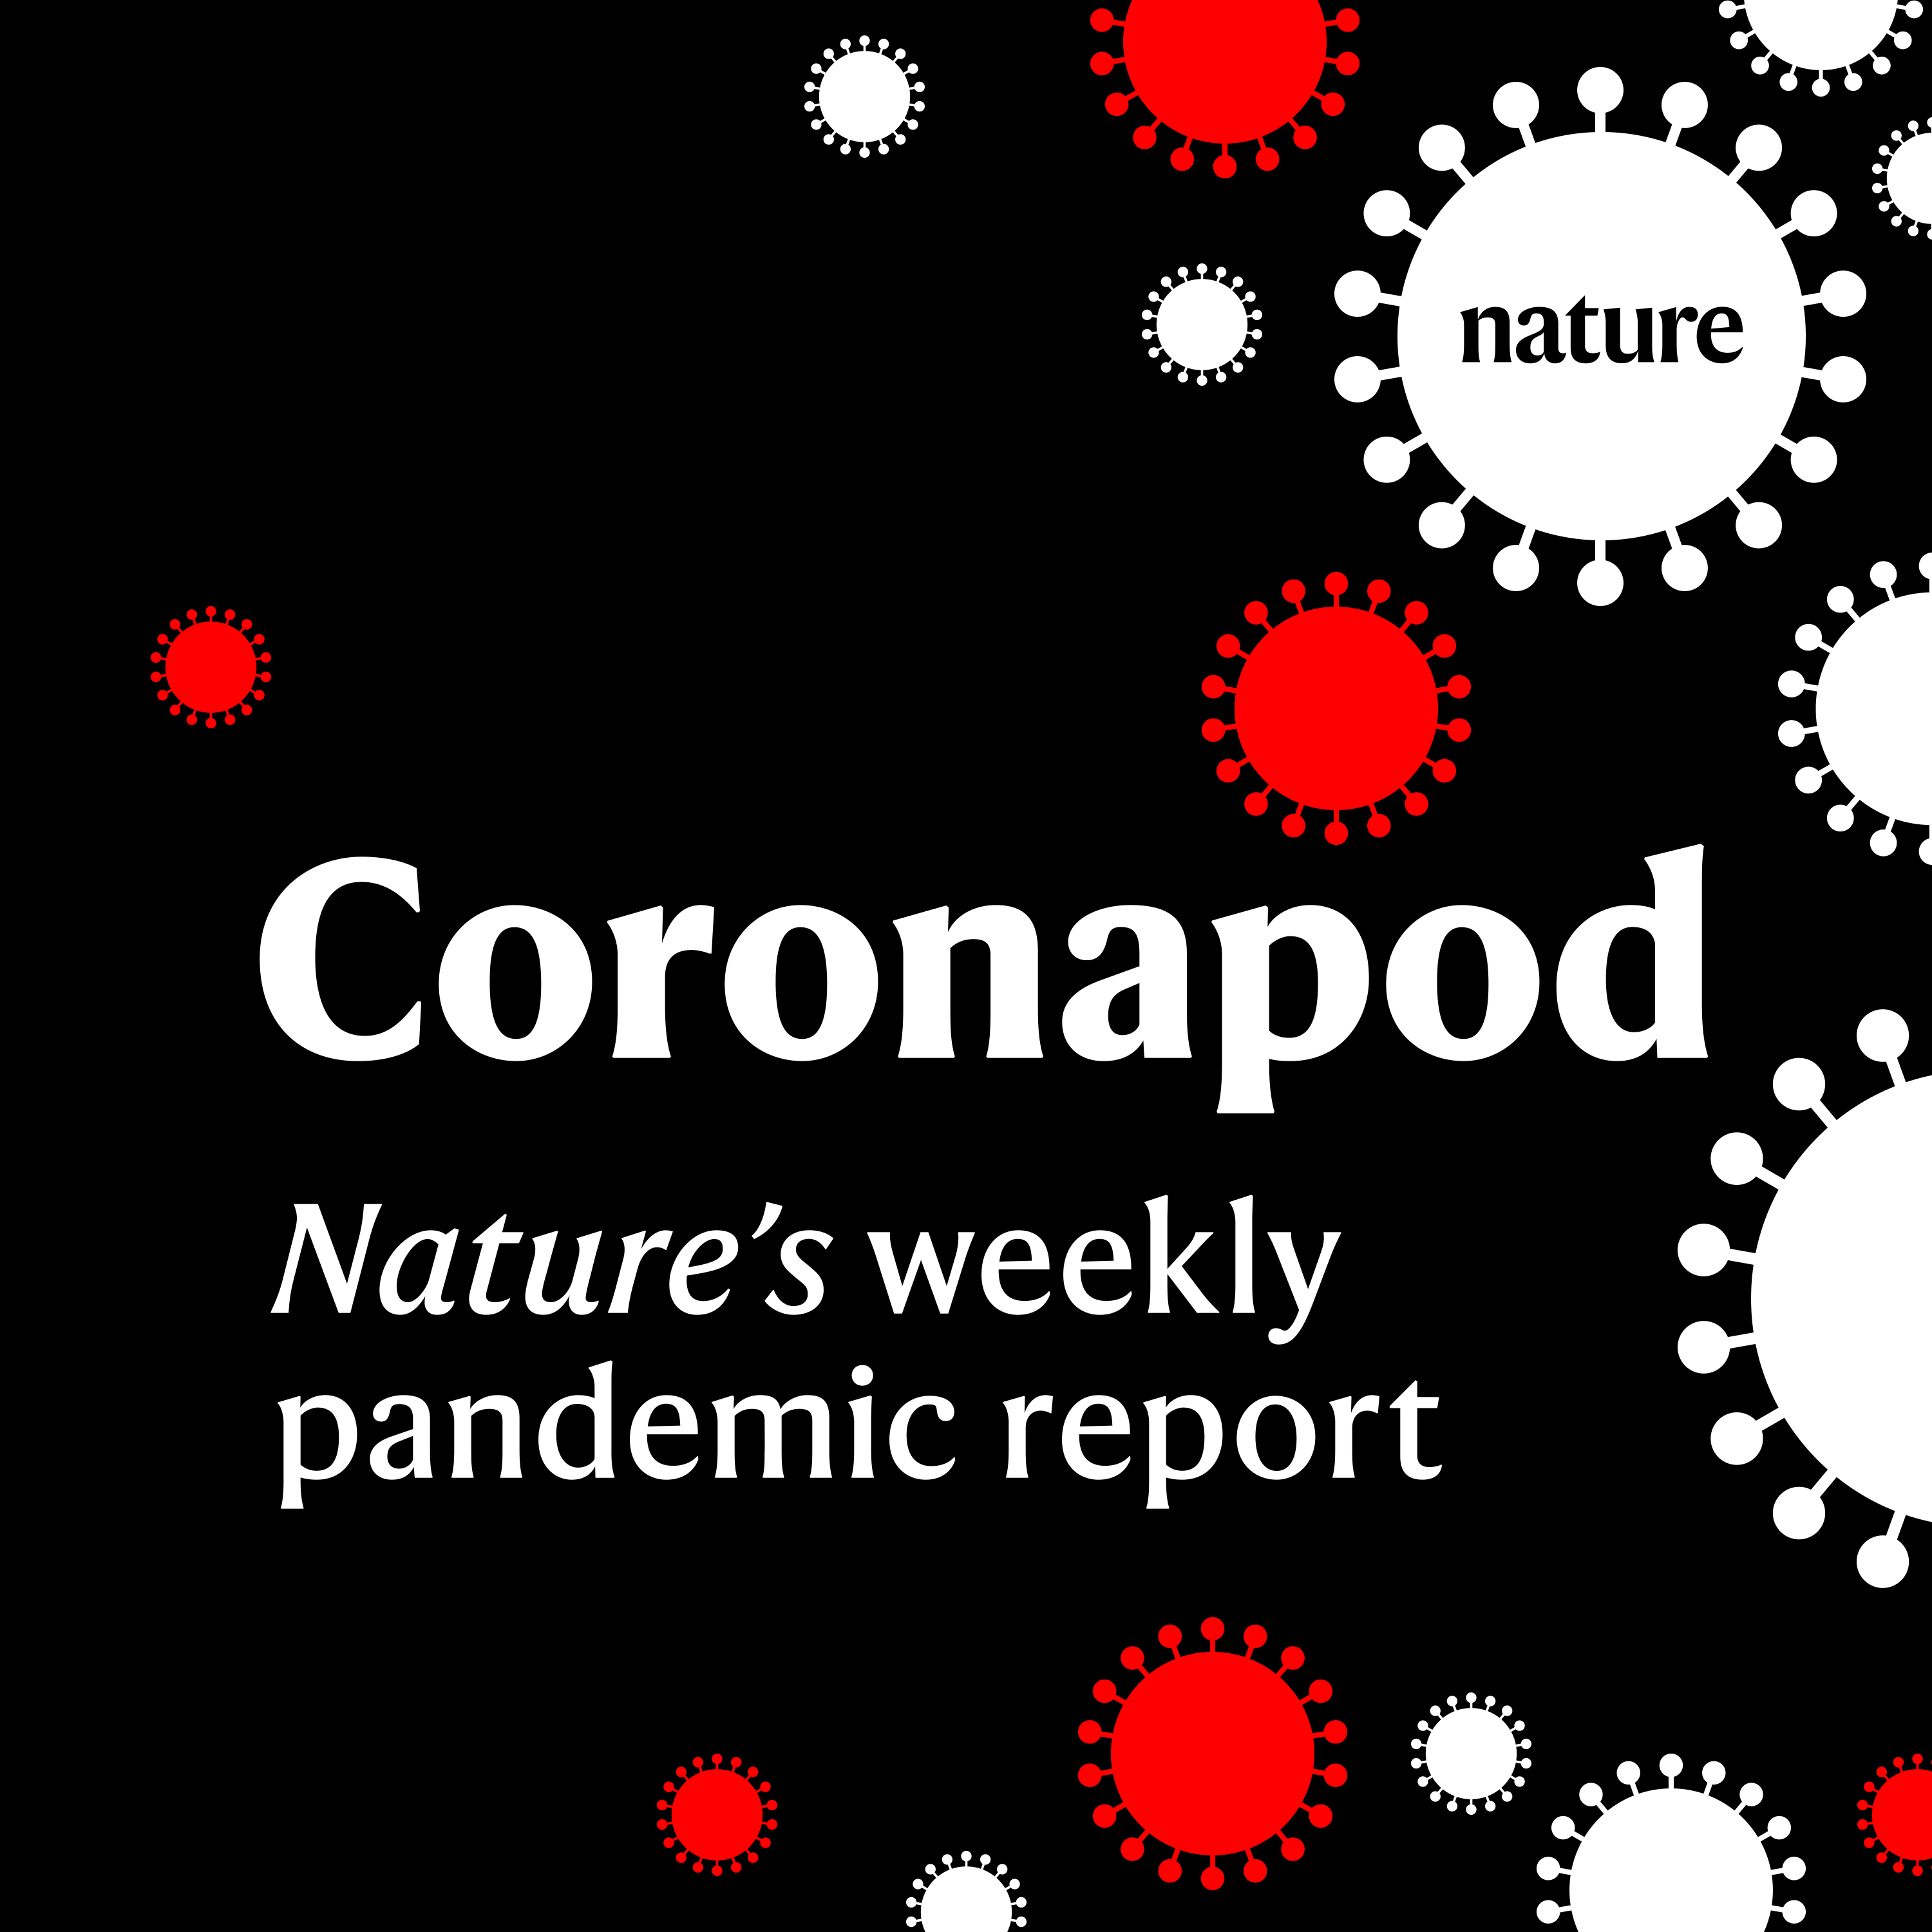 Coronapod: A whistle-blower's quest to take politics out of coronavirus surveillance